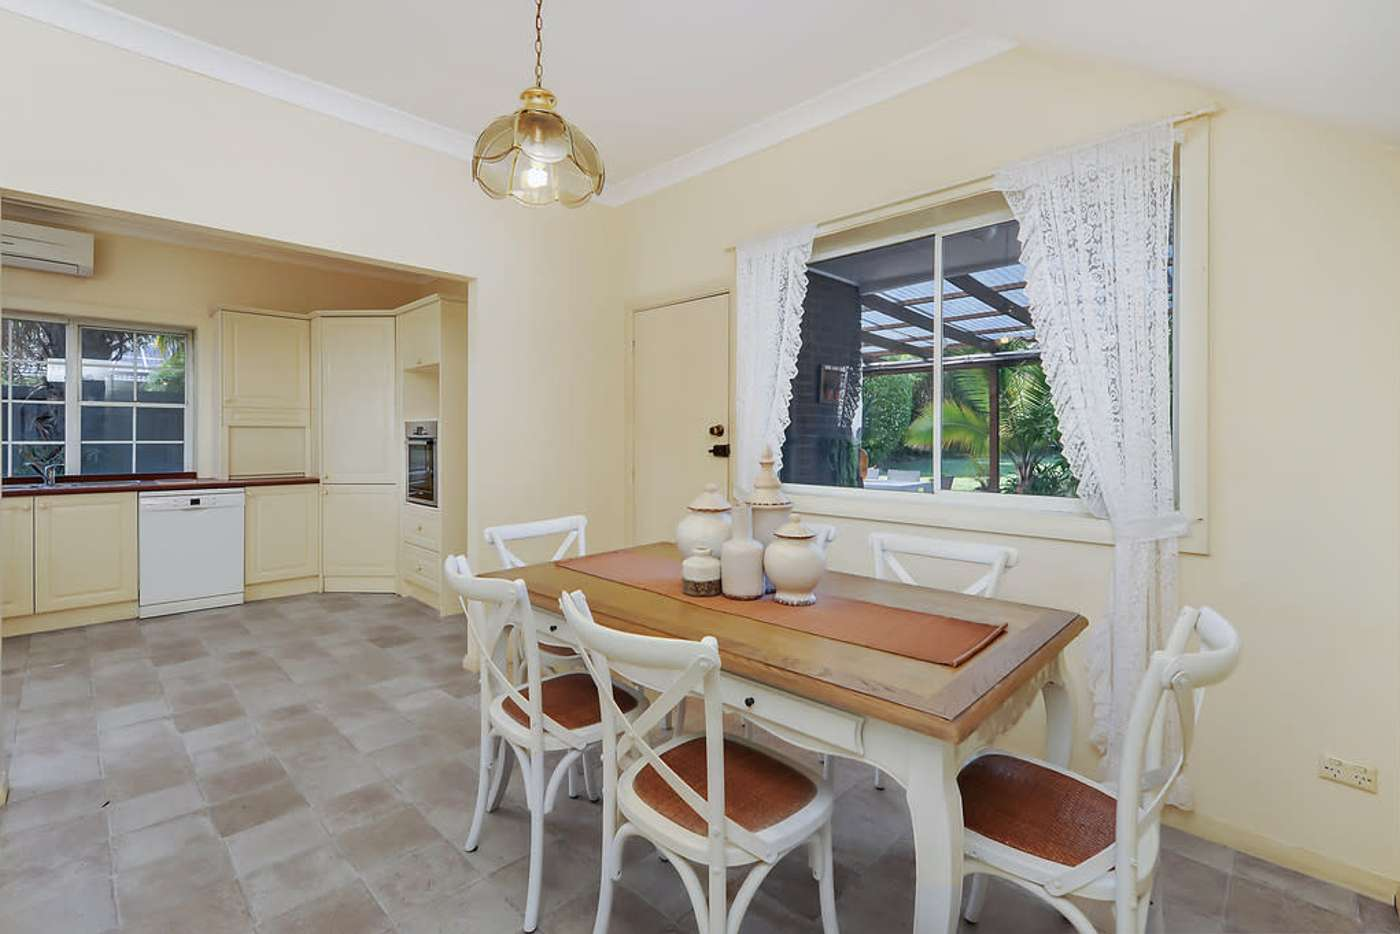 Seventh view of Homely house listing, 9 Glenview Road, Mount Kuring-gai NSW 2080